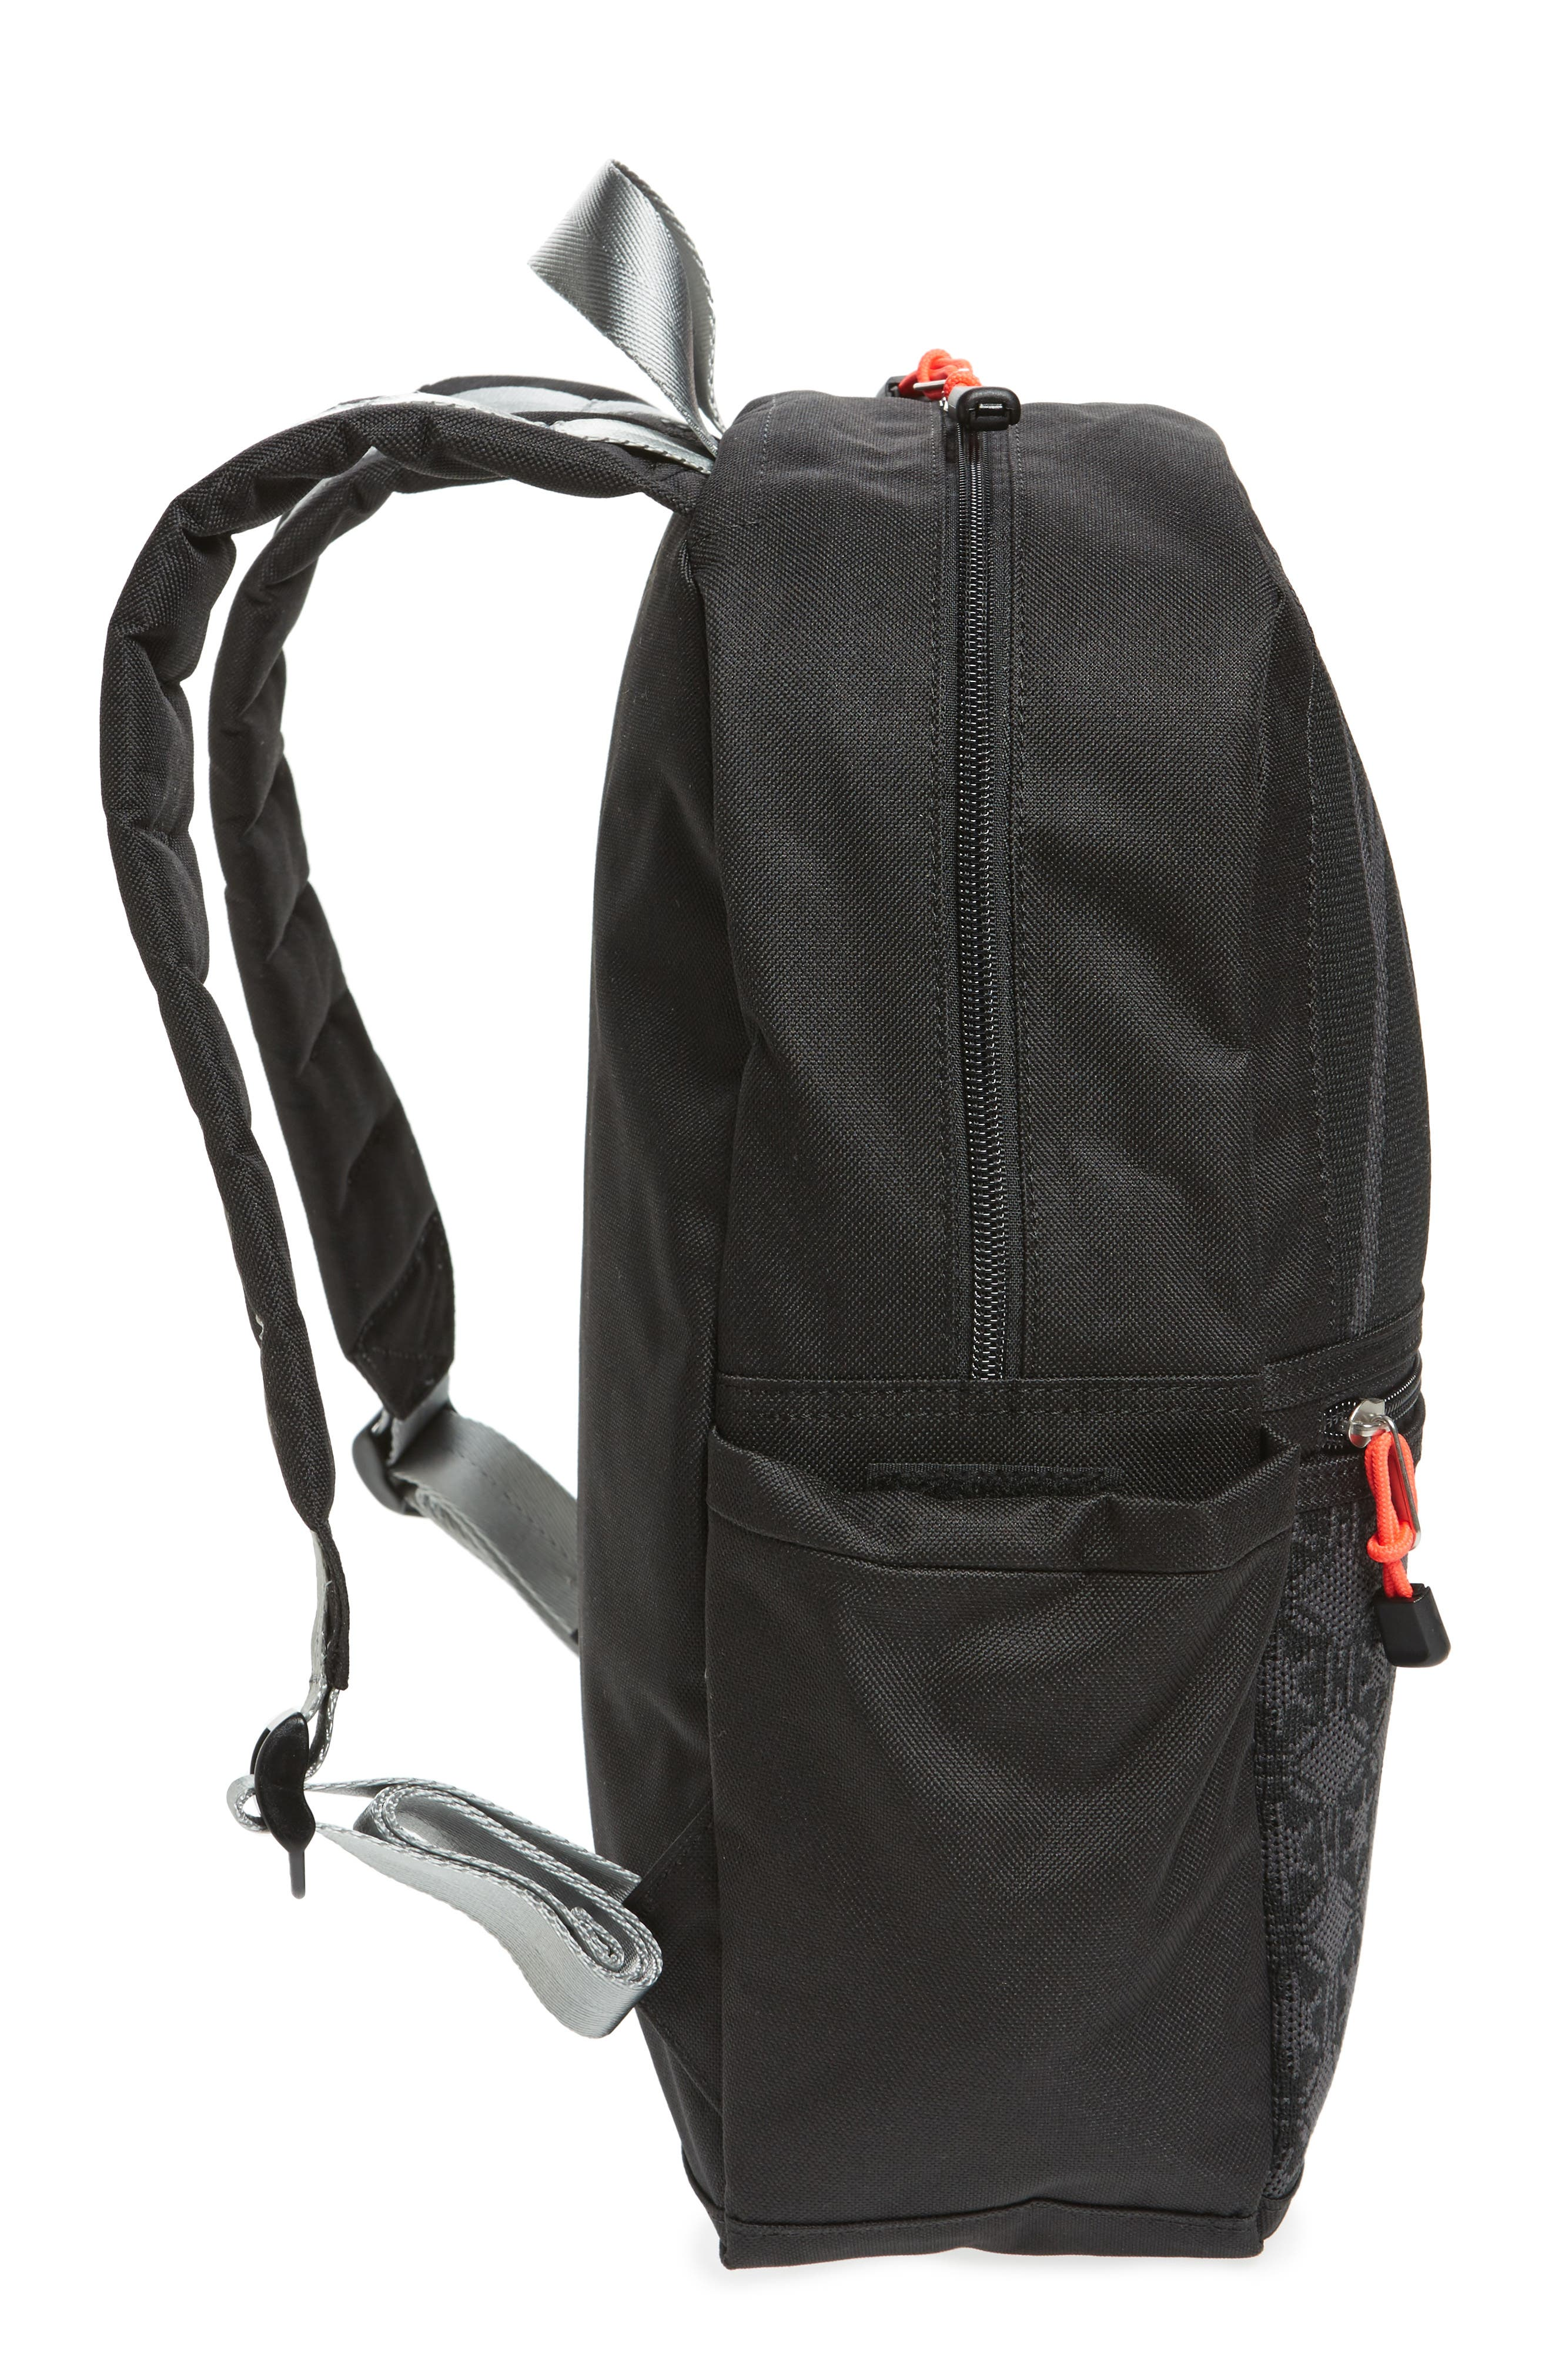 Star Wars<sup>™</sup> - Darth Vader Kane Backpack,                             Alternate thumbnail 5, color,                             001